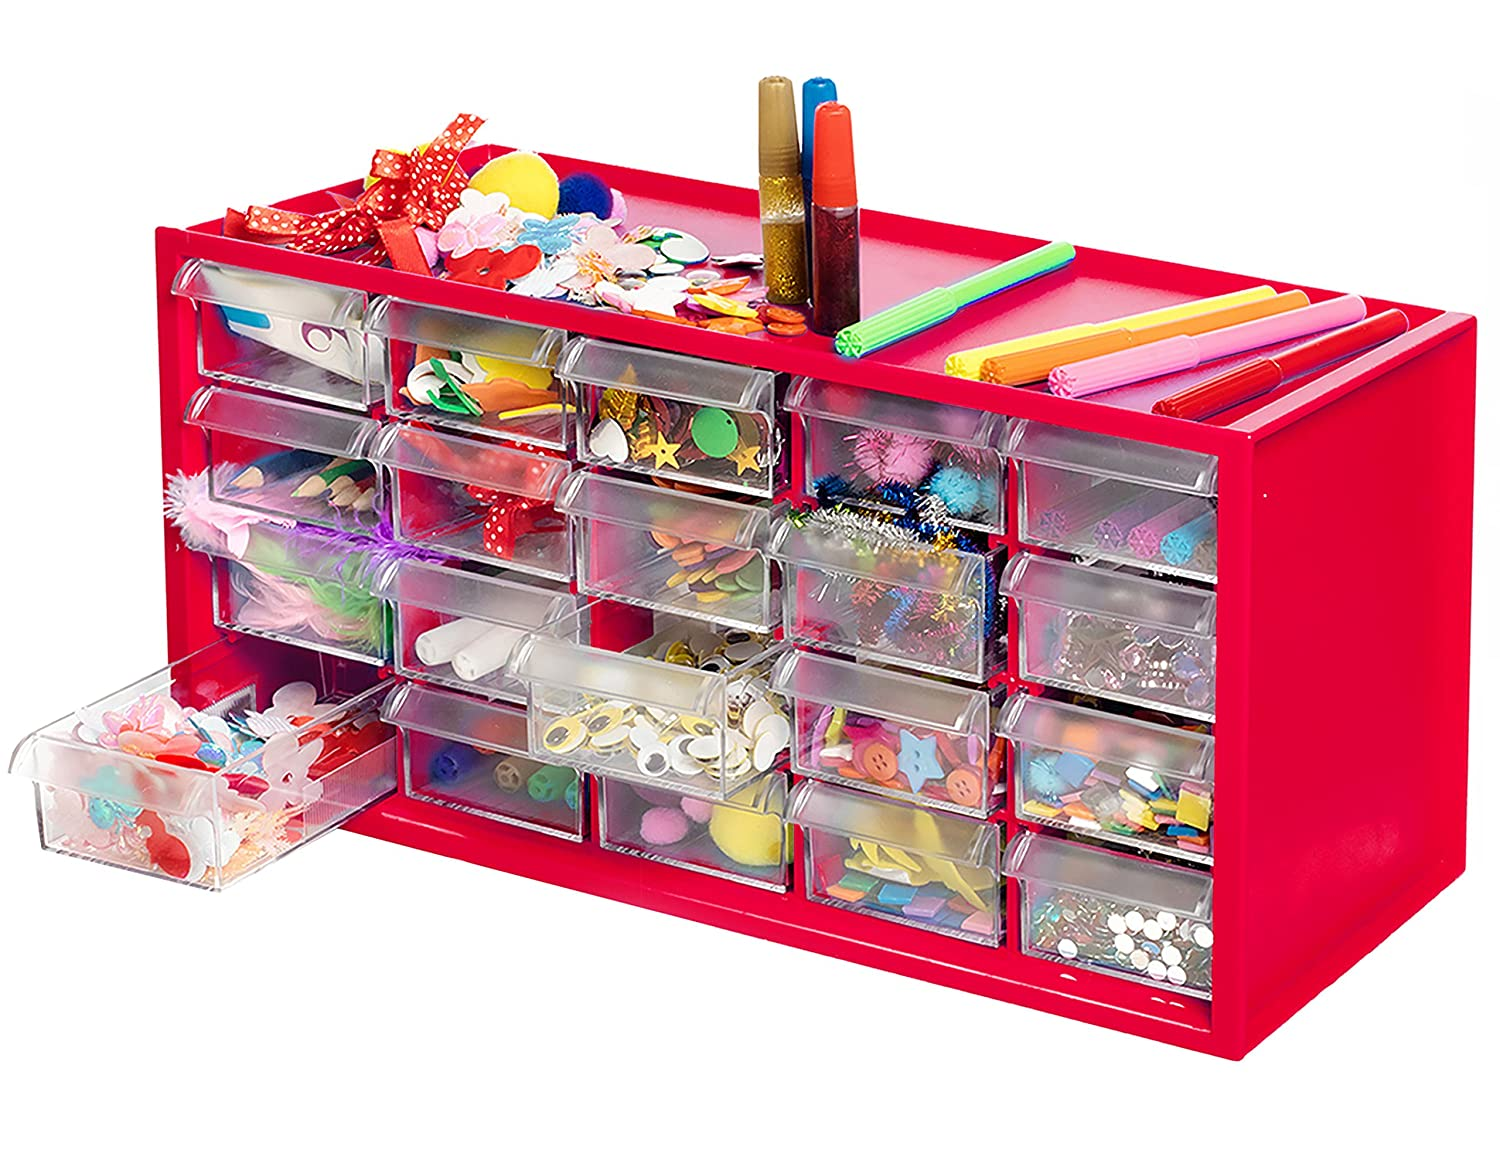 Arts & Crafts Supply Center Complete with 20 Filled Drawers of Craft Materials Kraftic